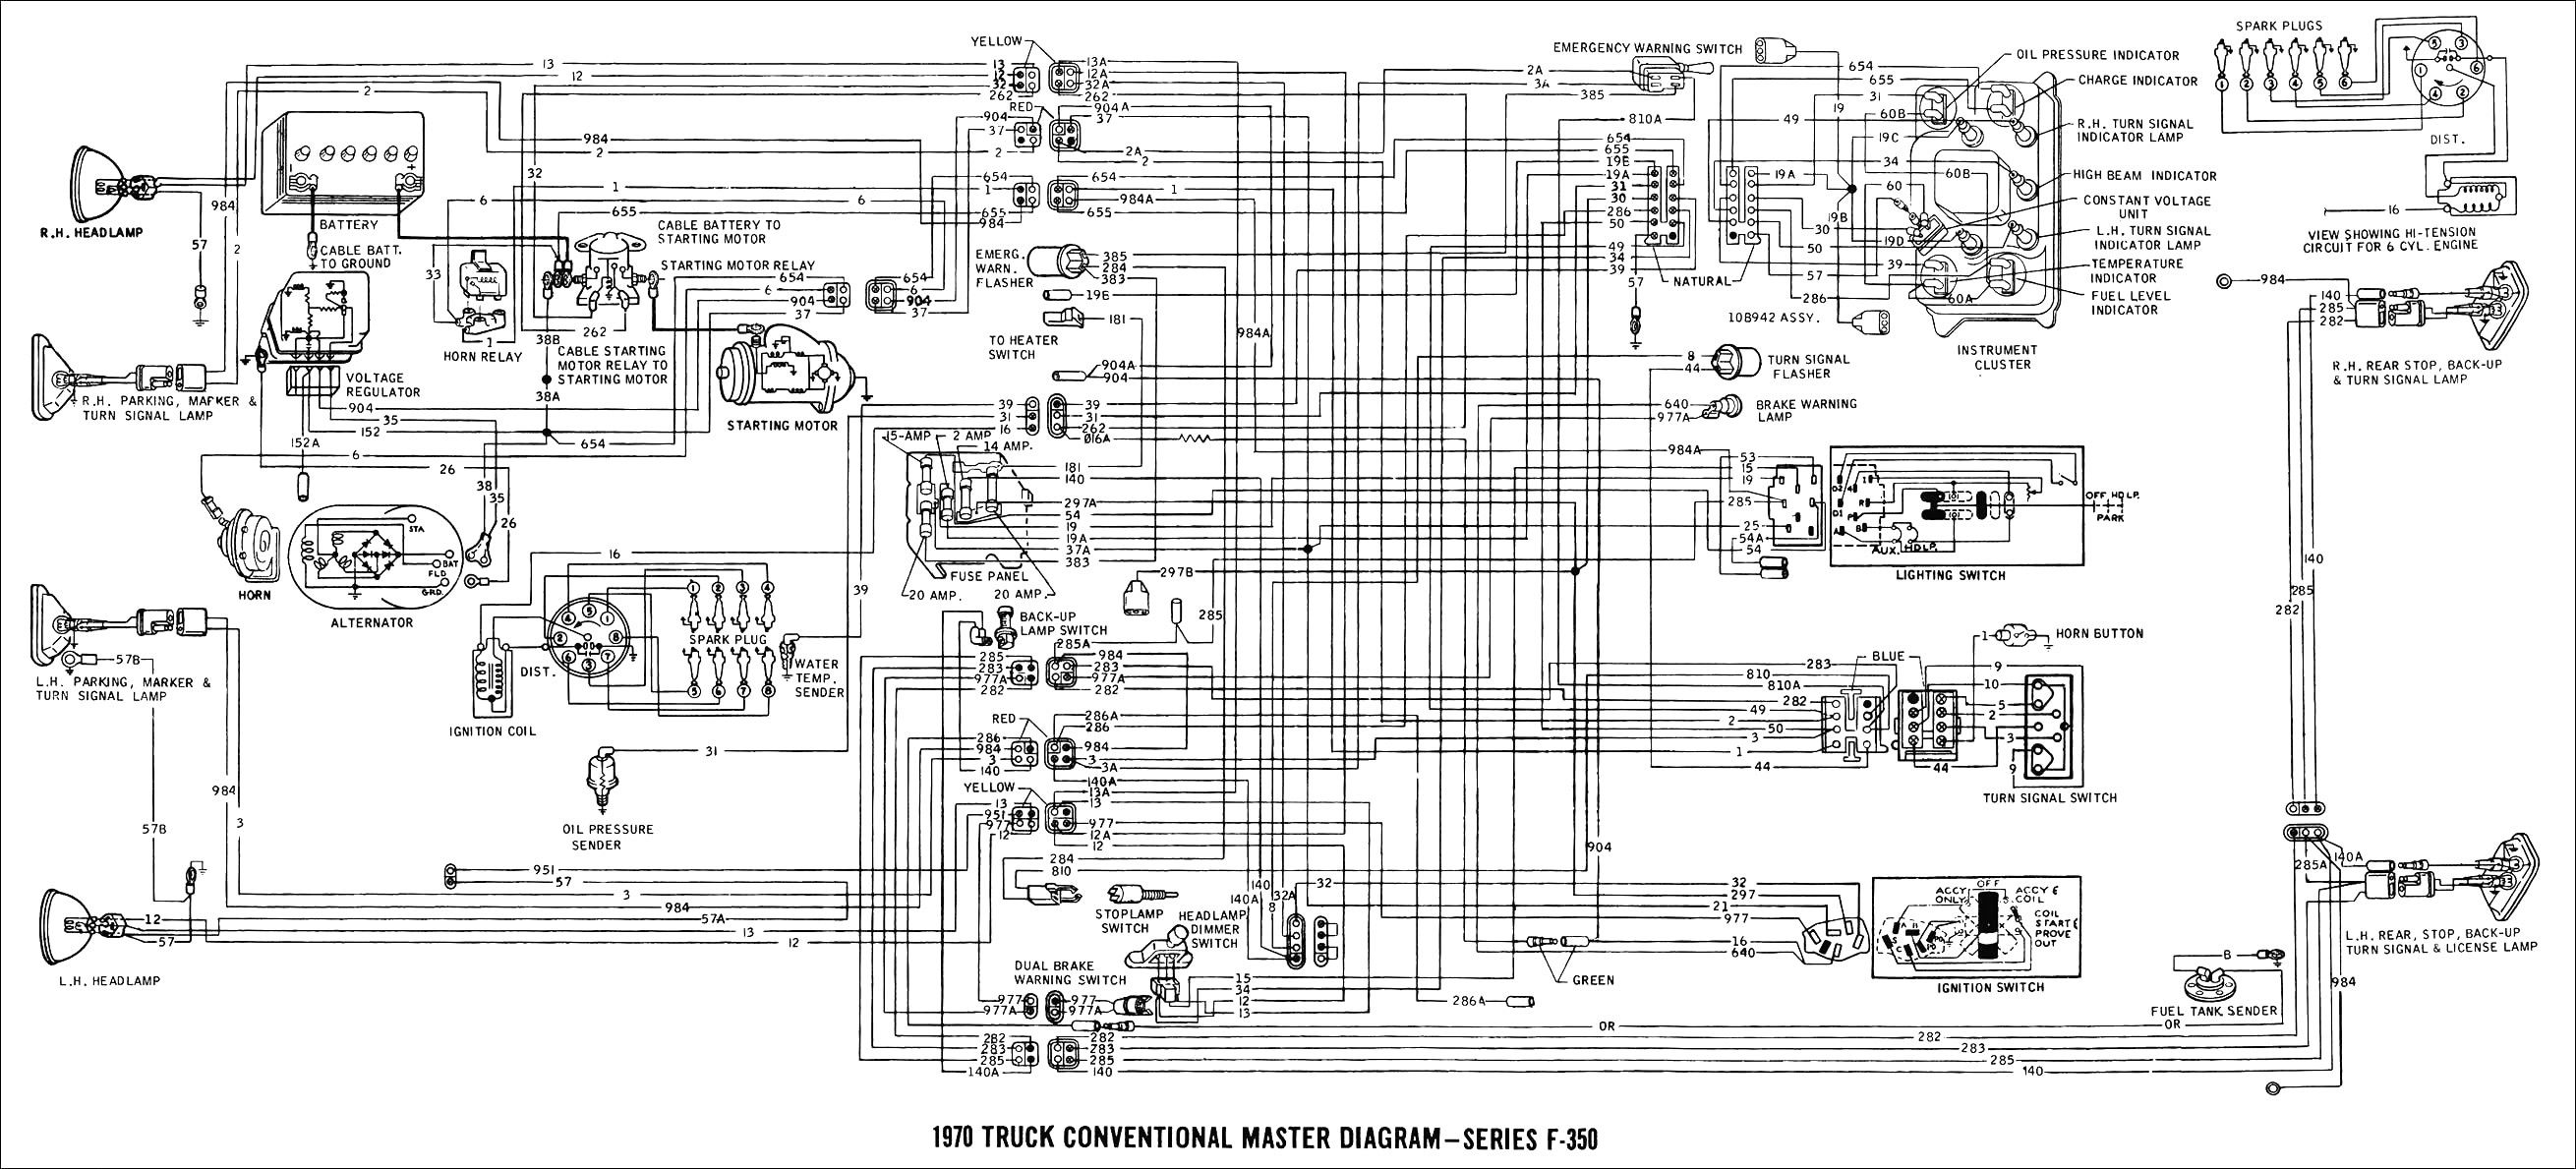 trace wiring diagram wiring diagrams pictures wiring